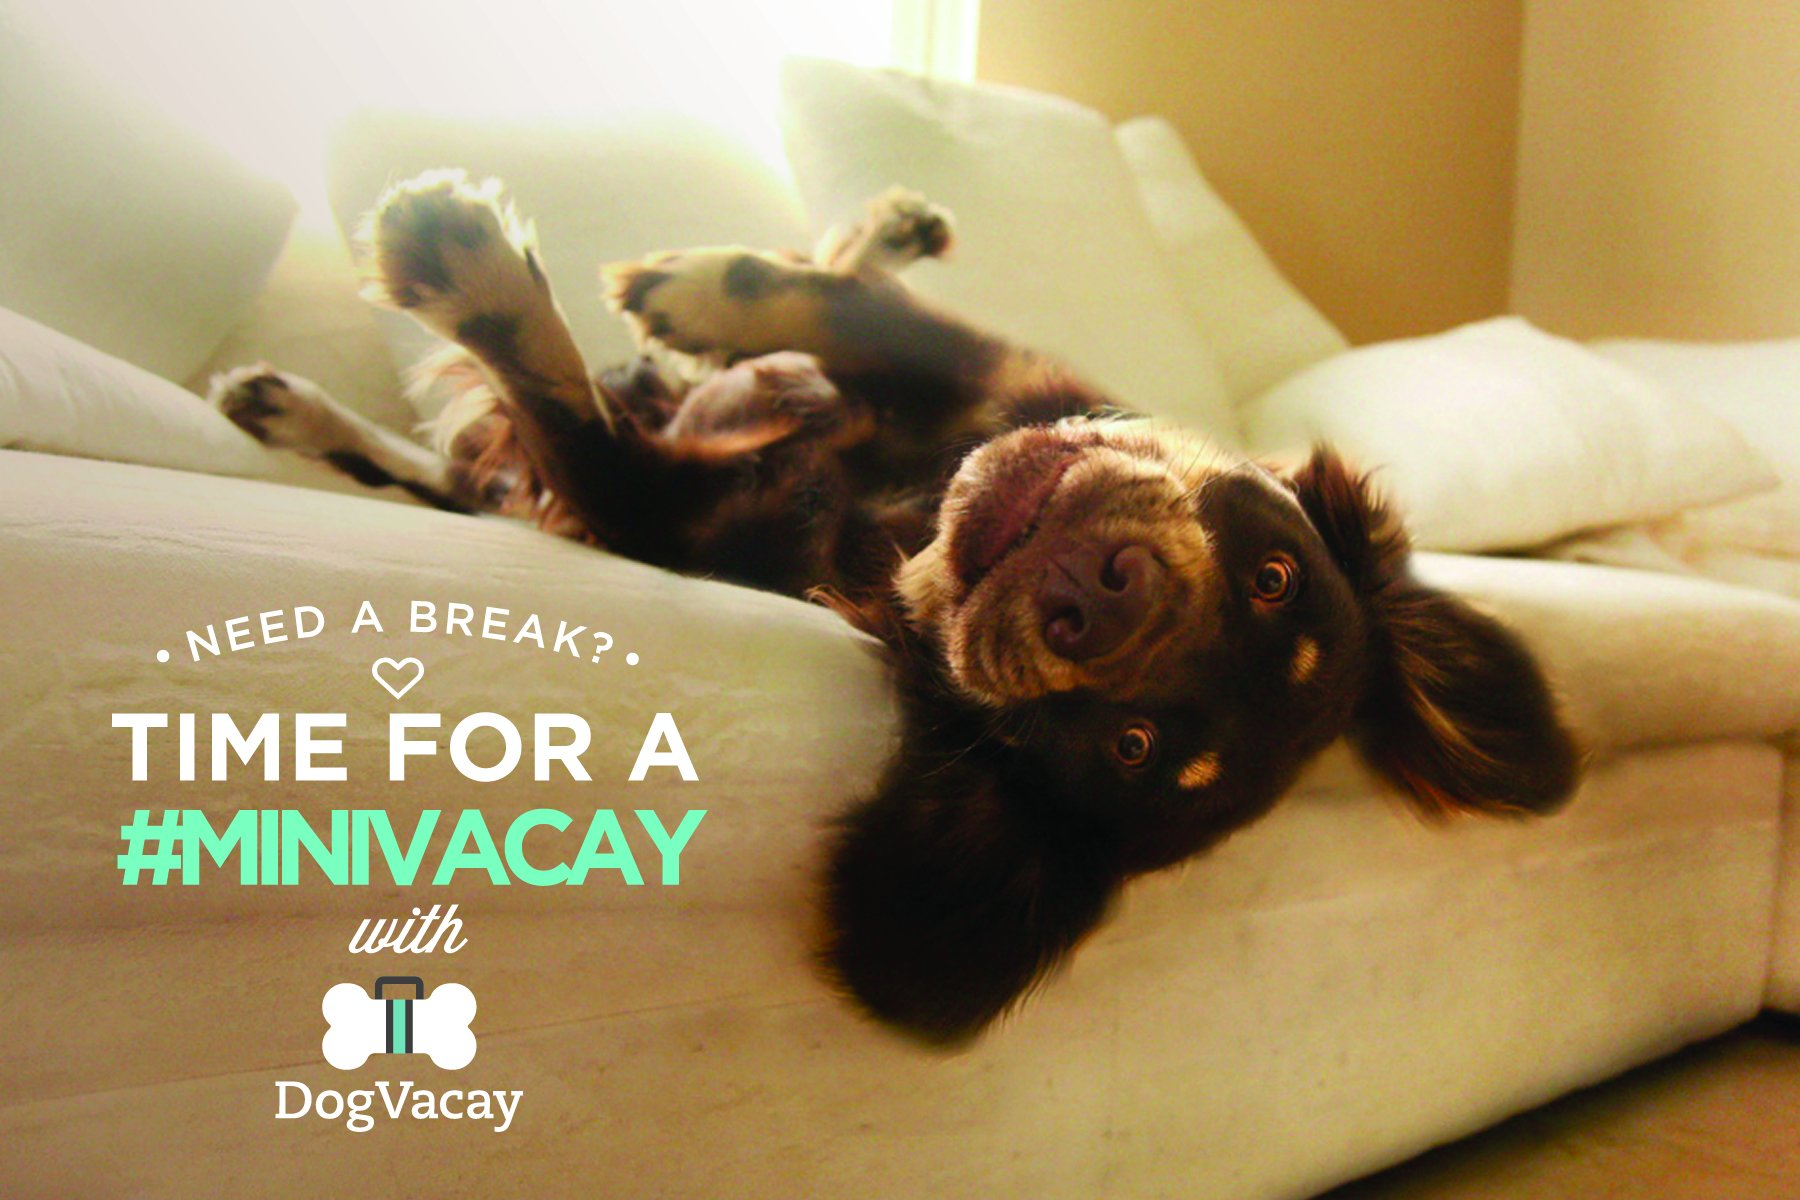 dogvacay.com - where to leave your dog when on vacation